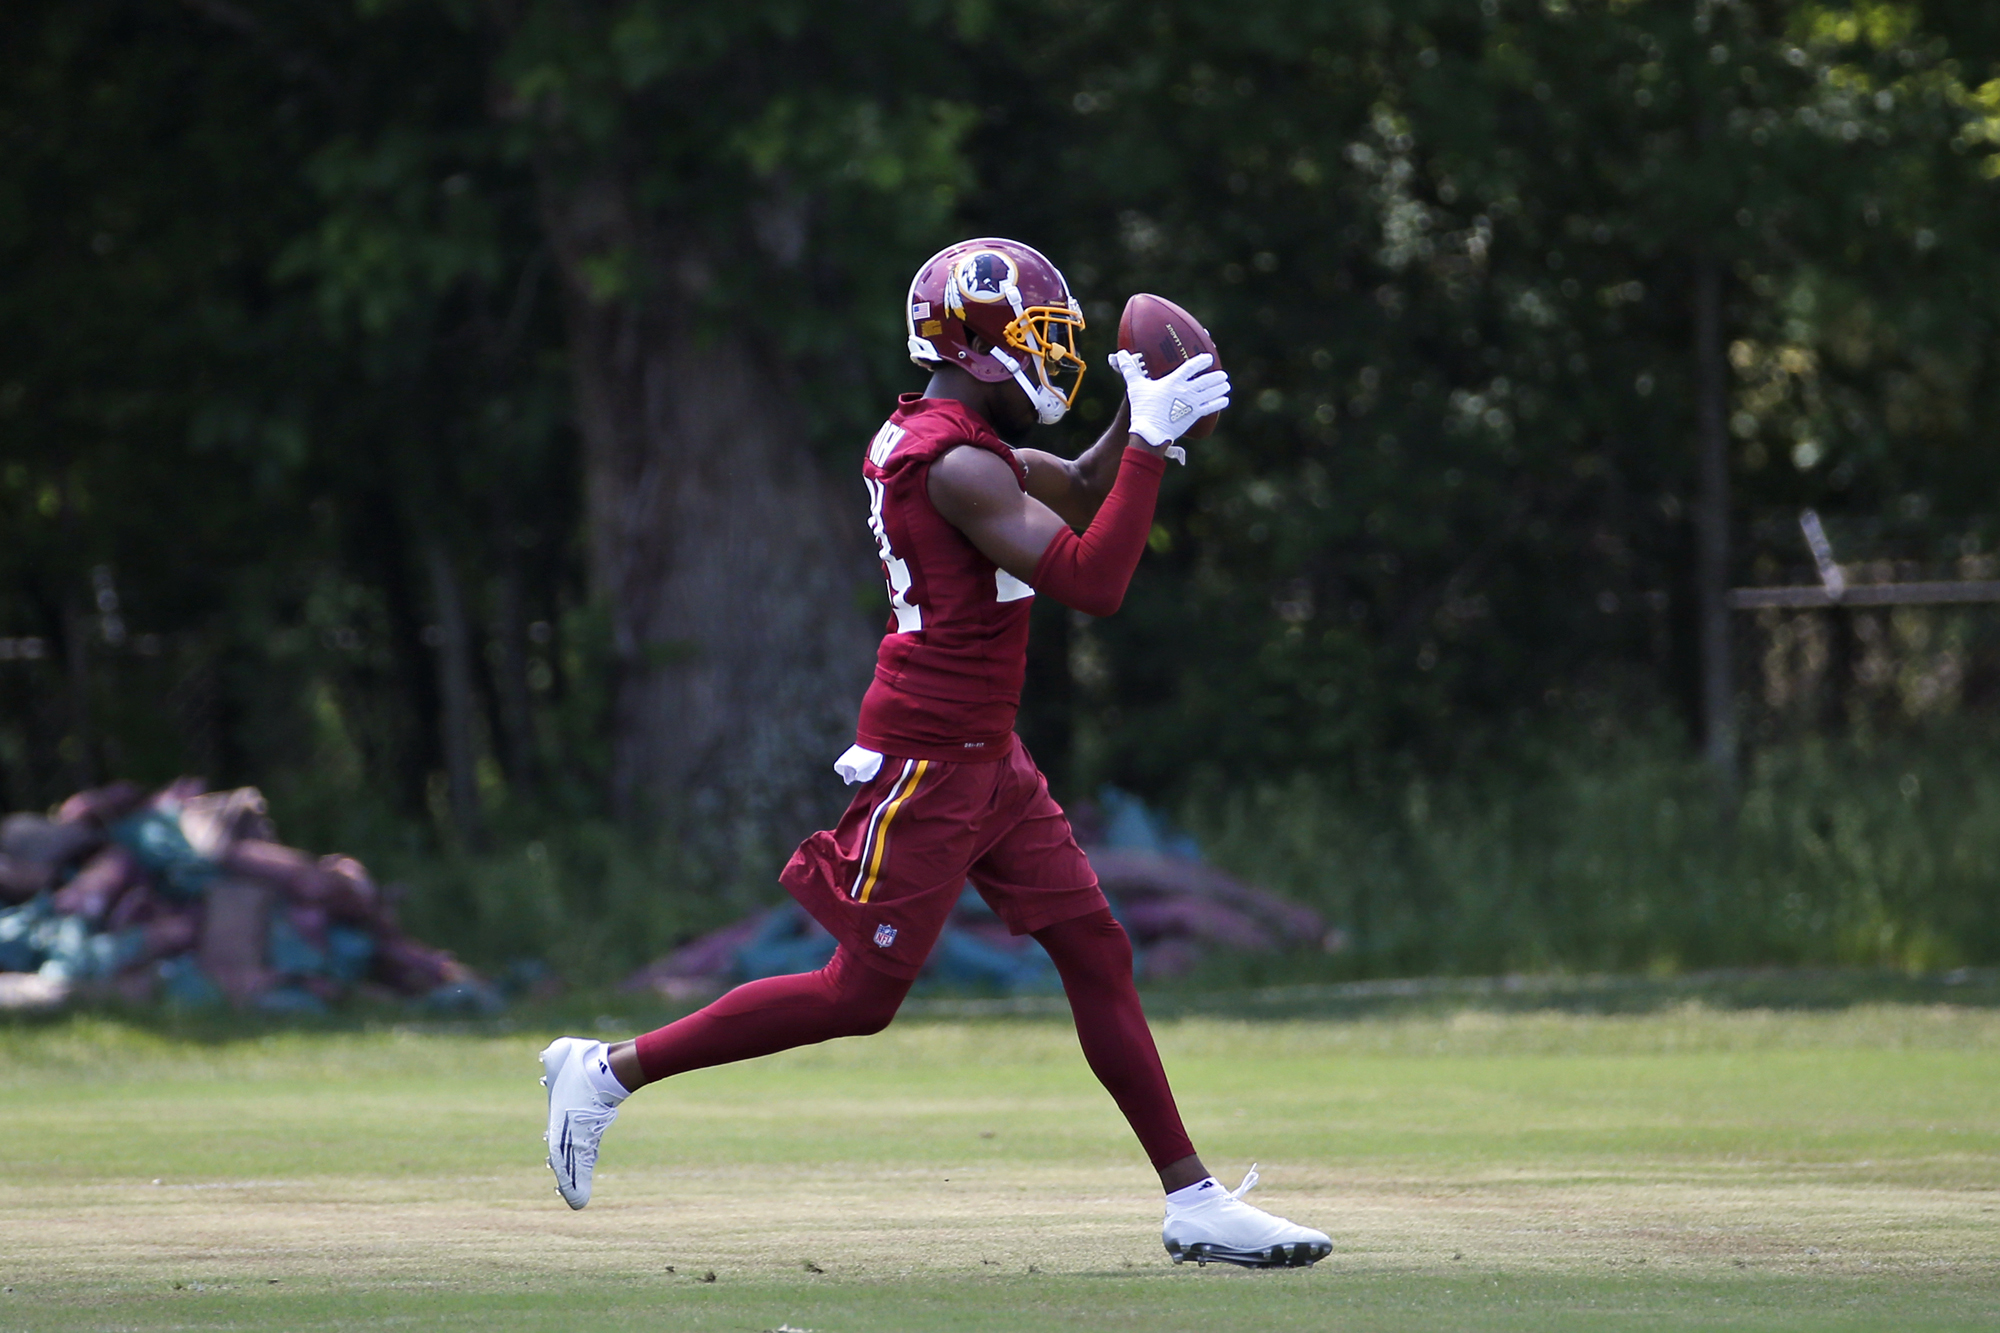 Washington Redskins corner back Josh Norman (24) catches the ball during practice at the team's NFL football training facility at Redskins Park, Wednesday, June 1, 2016 in Ashburn, Va.